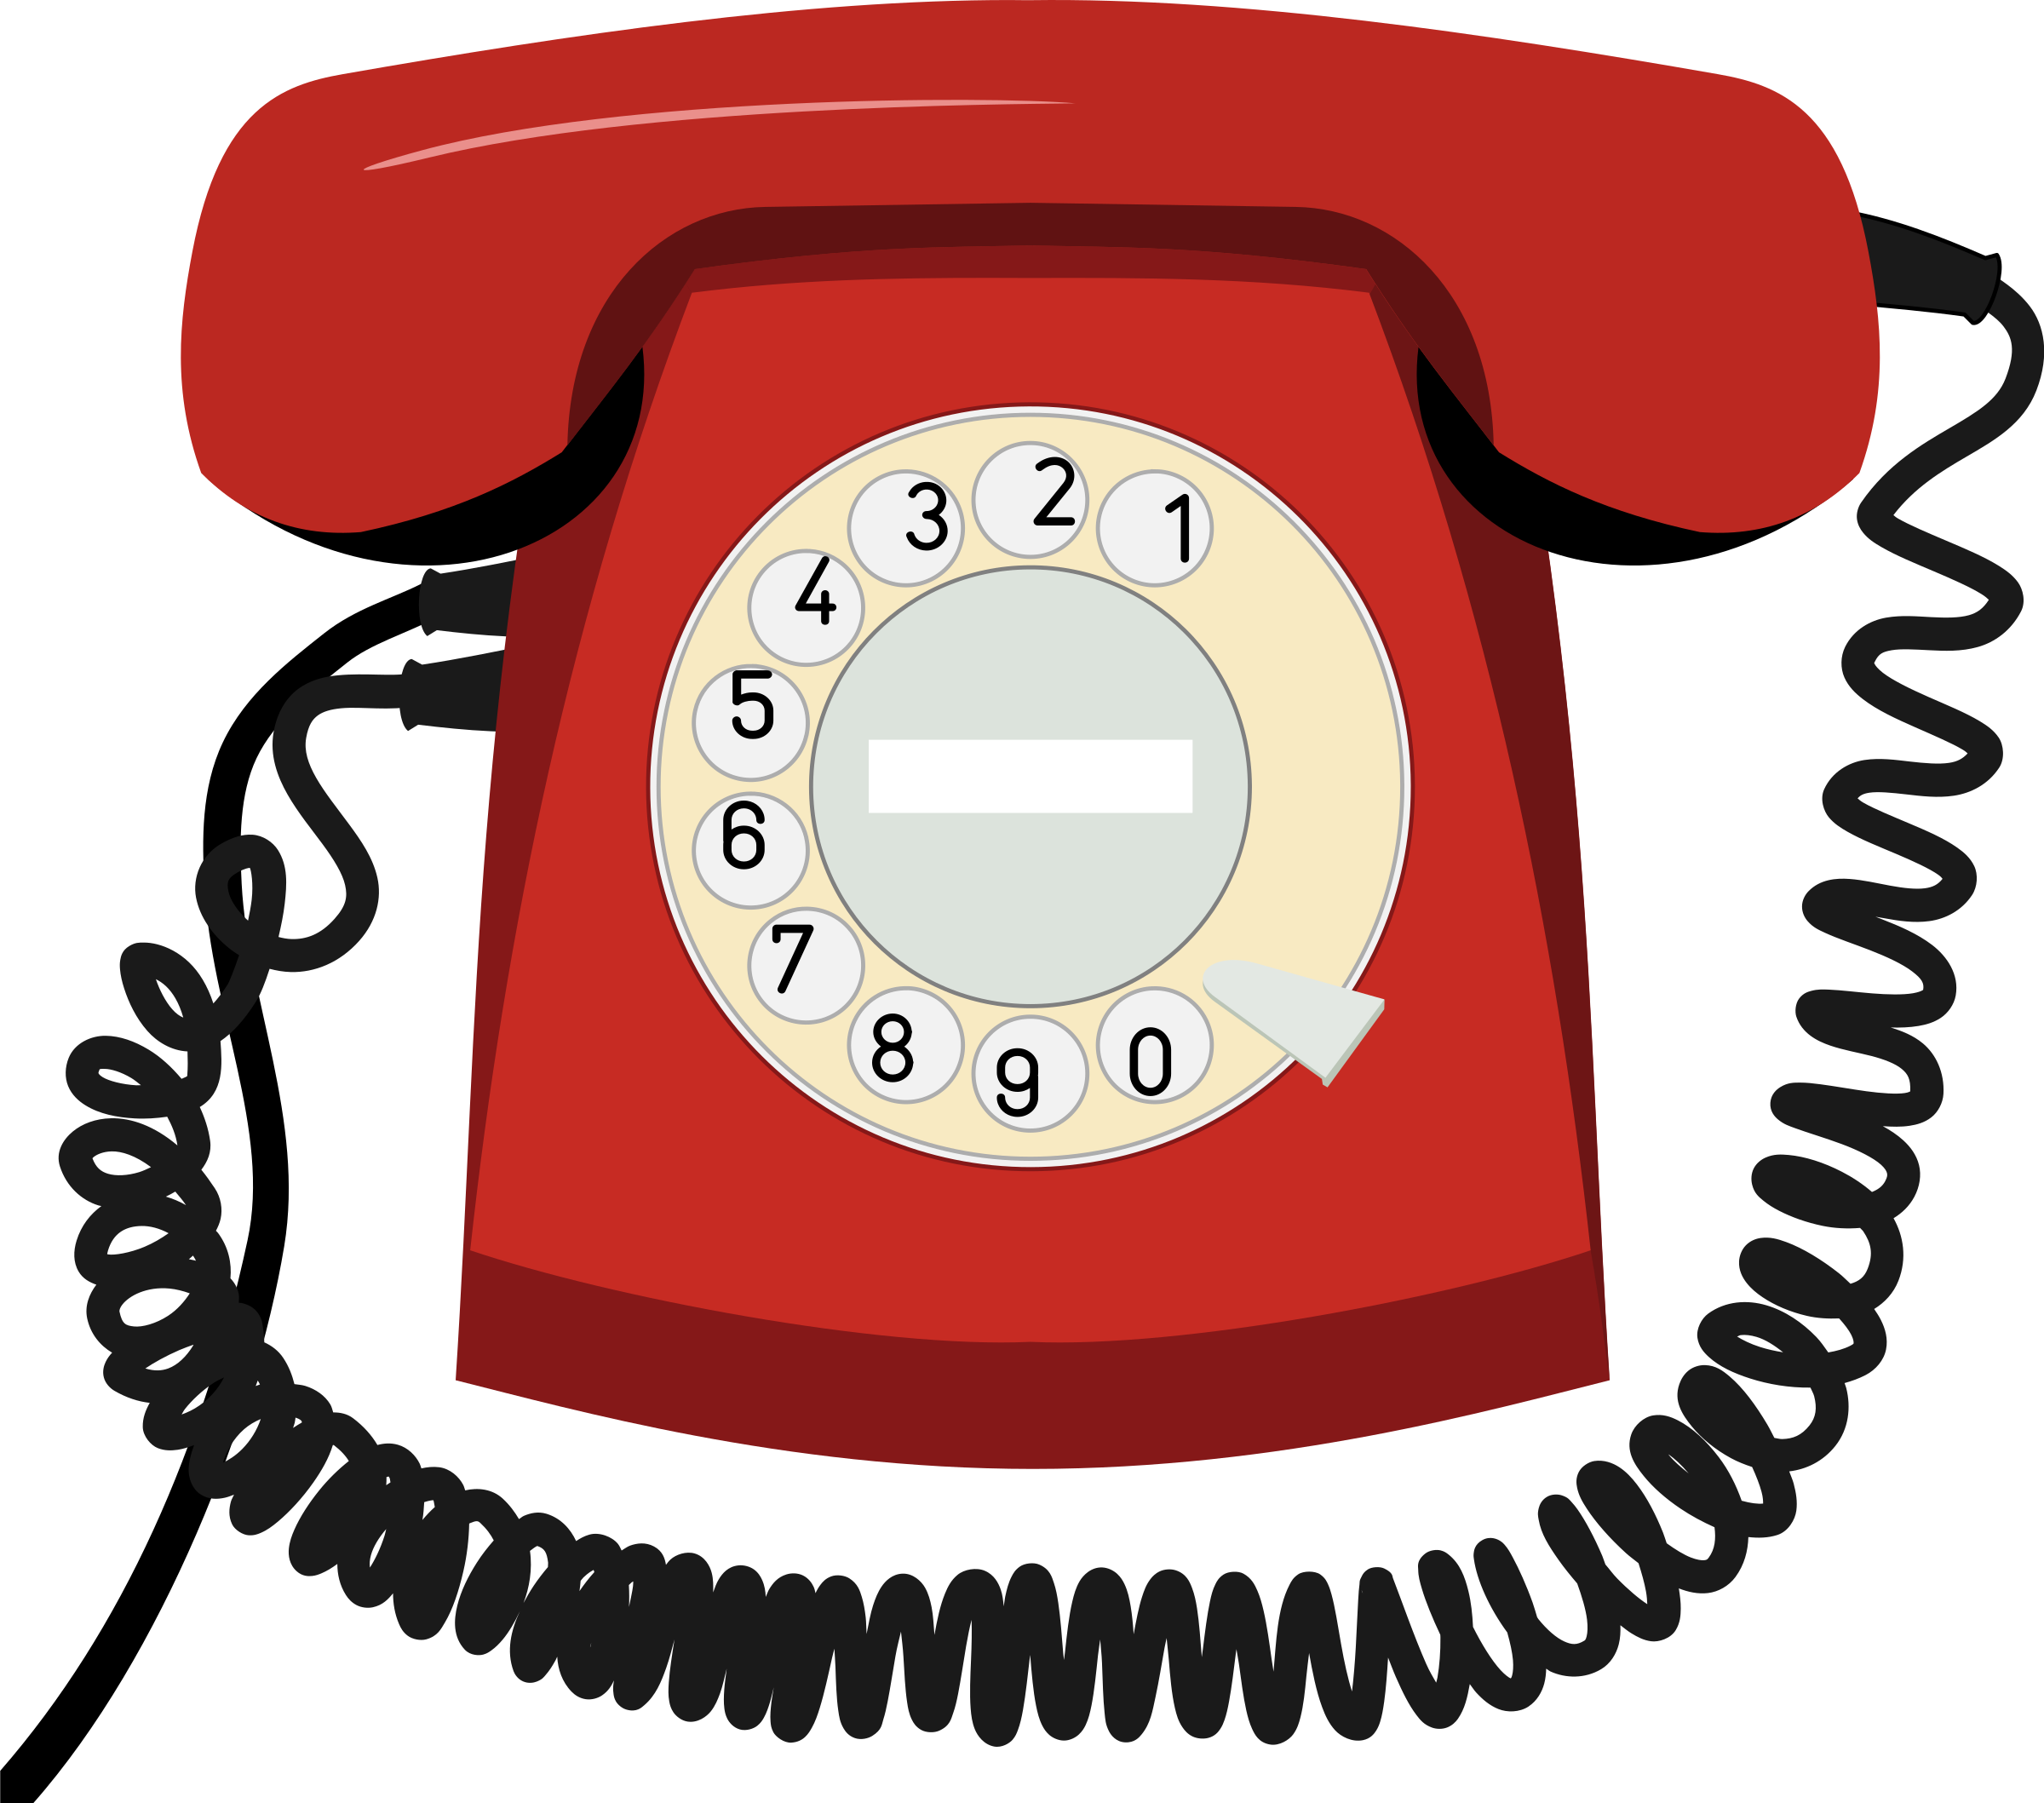 lphone clipart landline phone